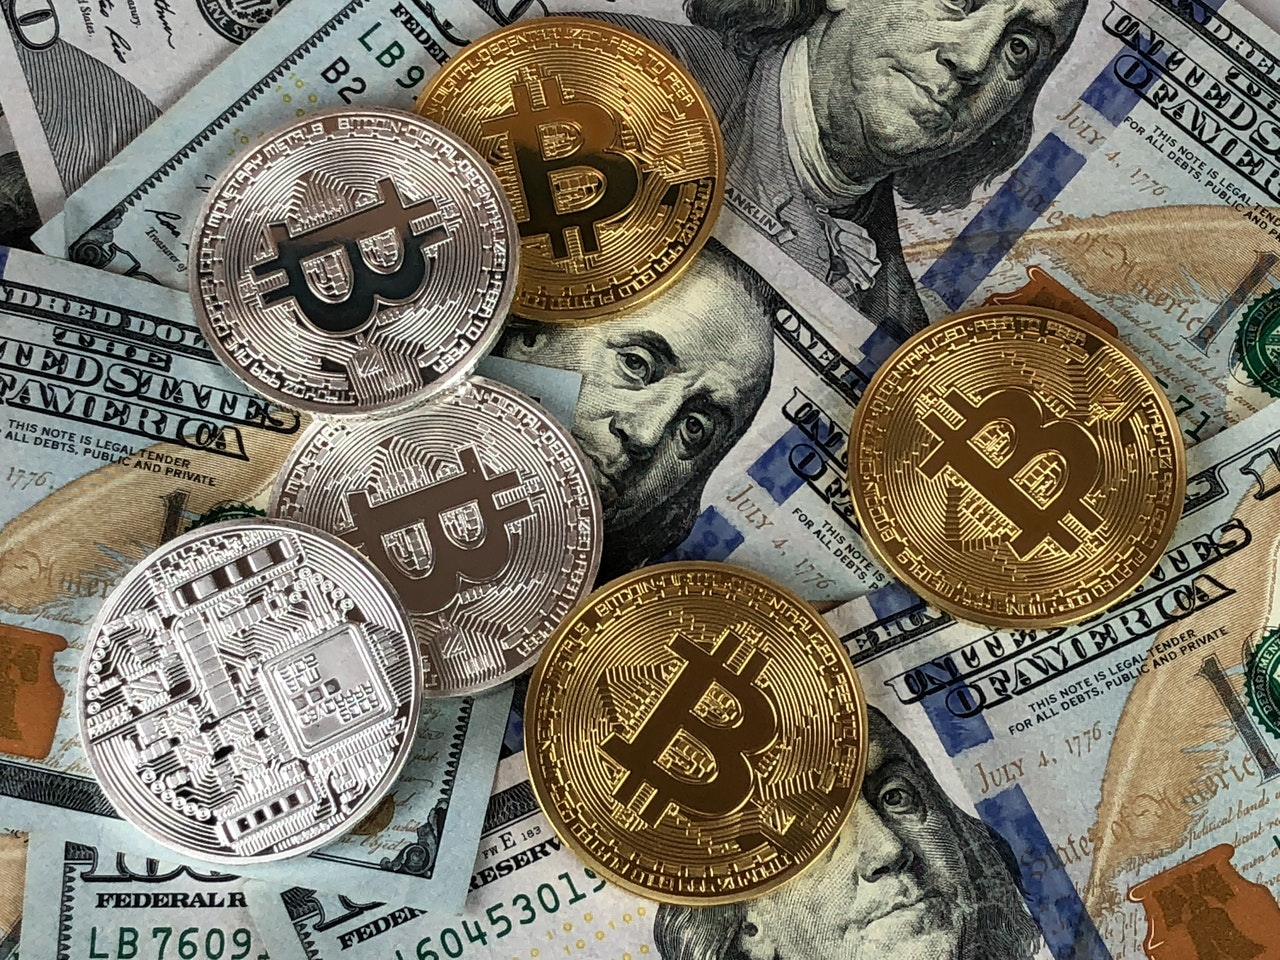 what is the best option for shorting btc in the US